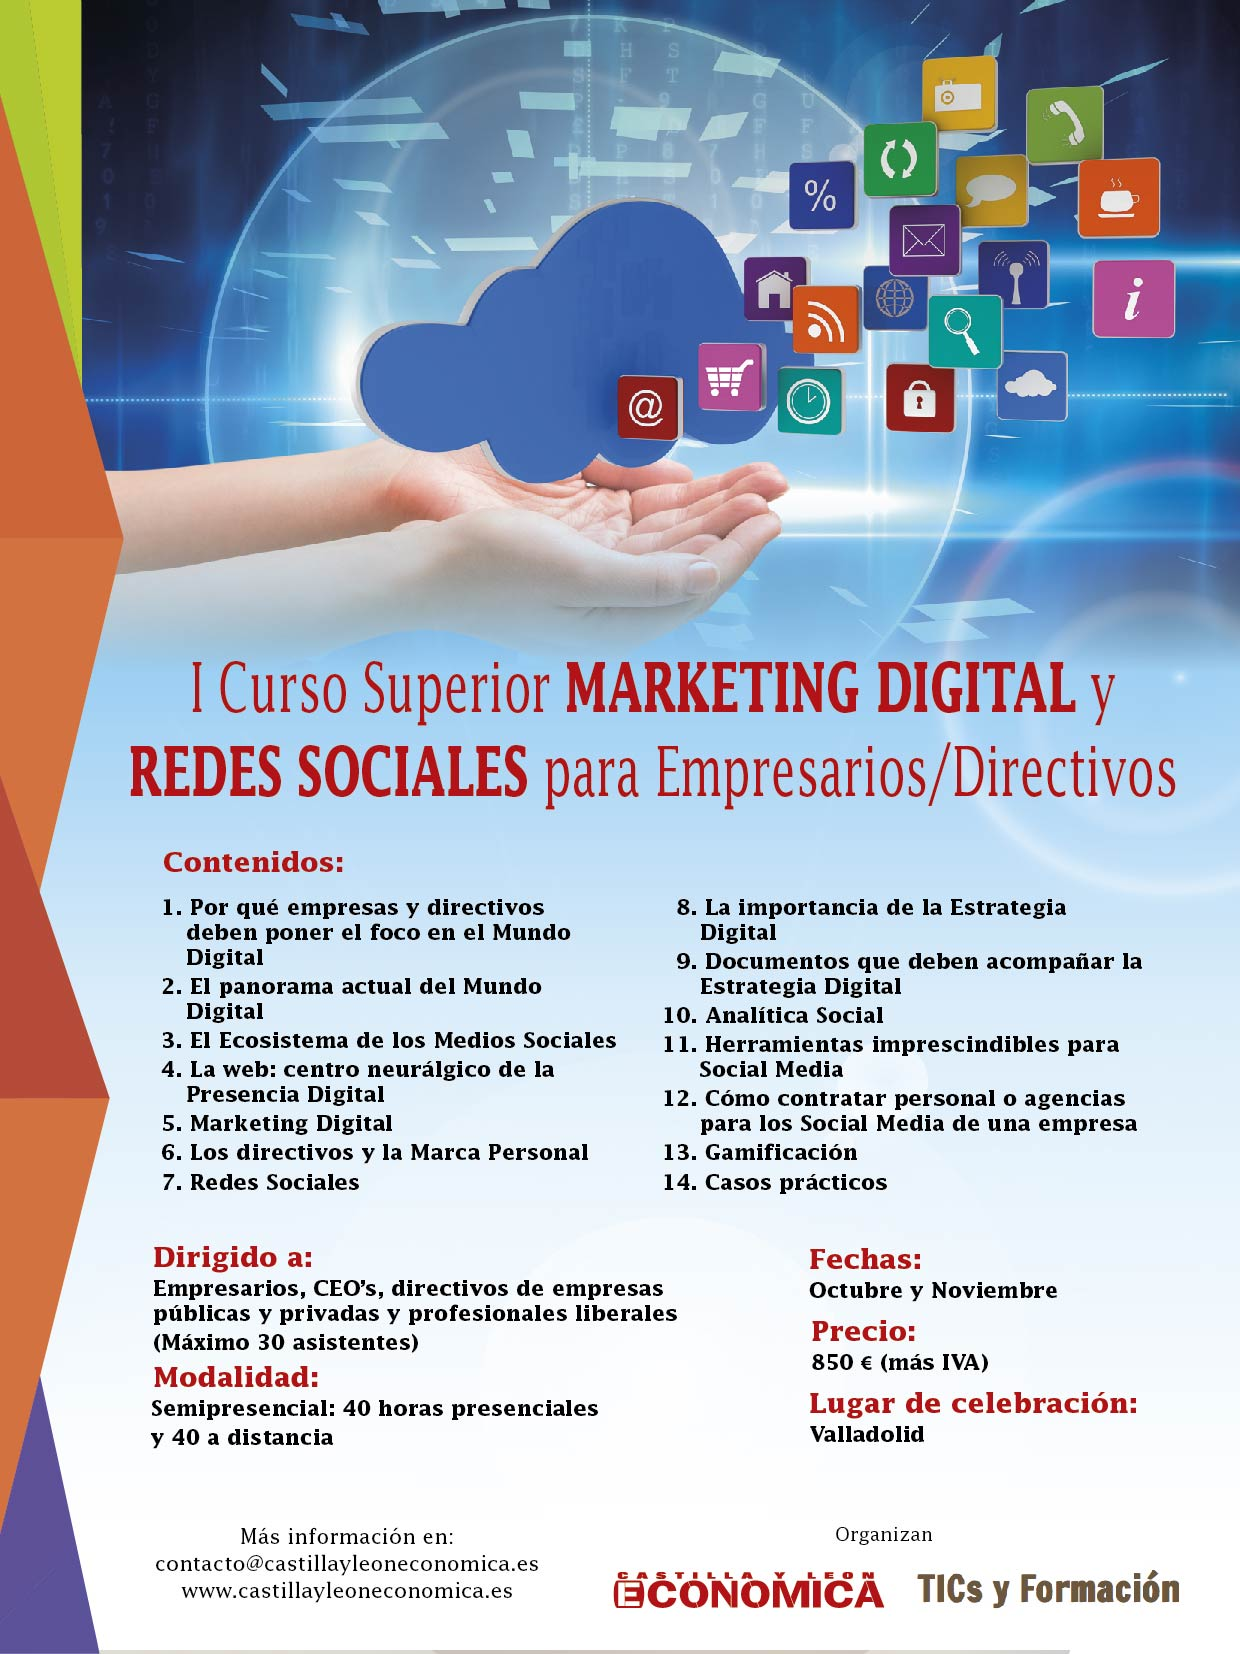 I Curso Superior en Marketing Digital y Redes Sociales para Empresarios y Directivos